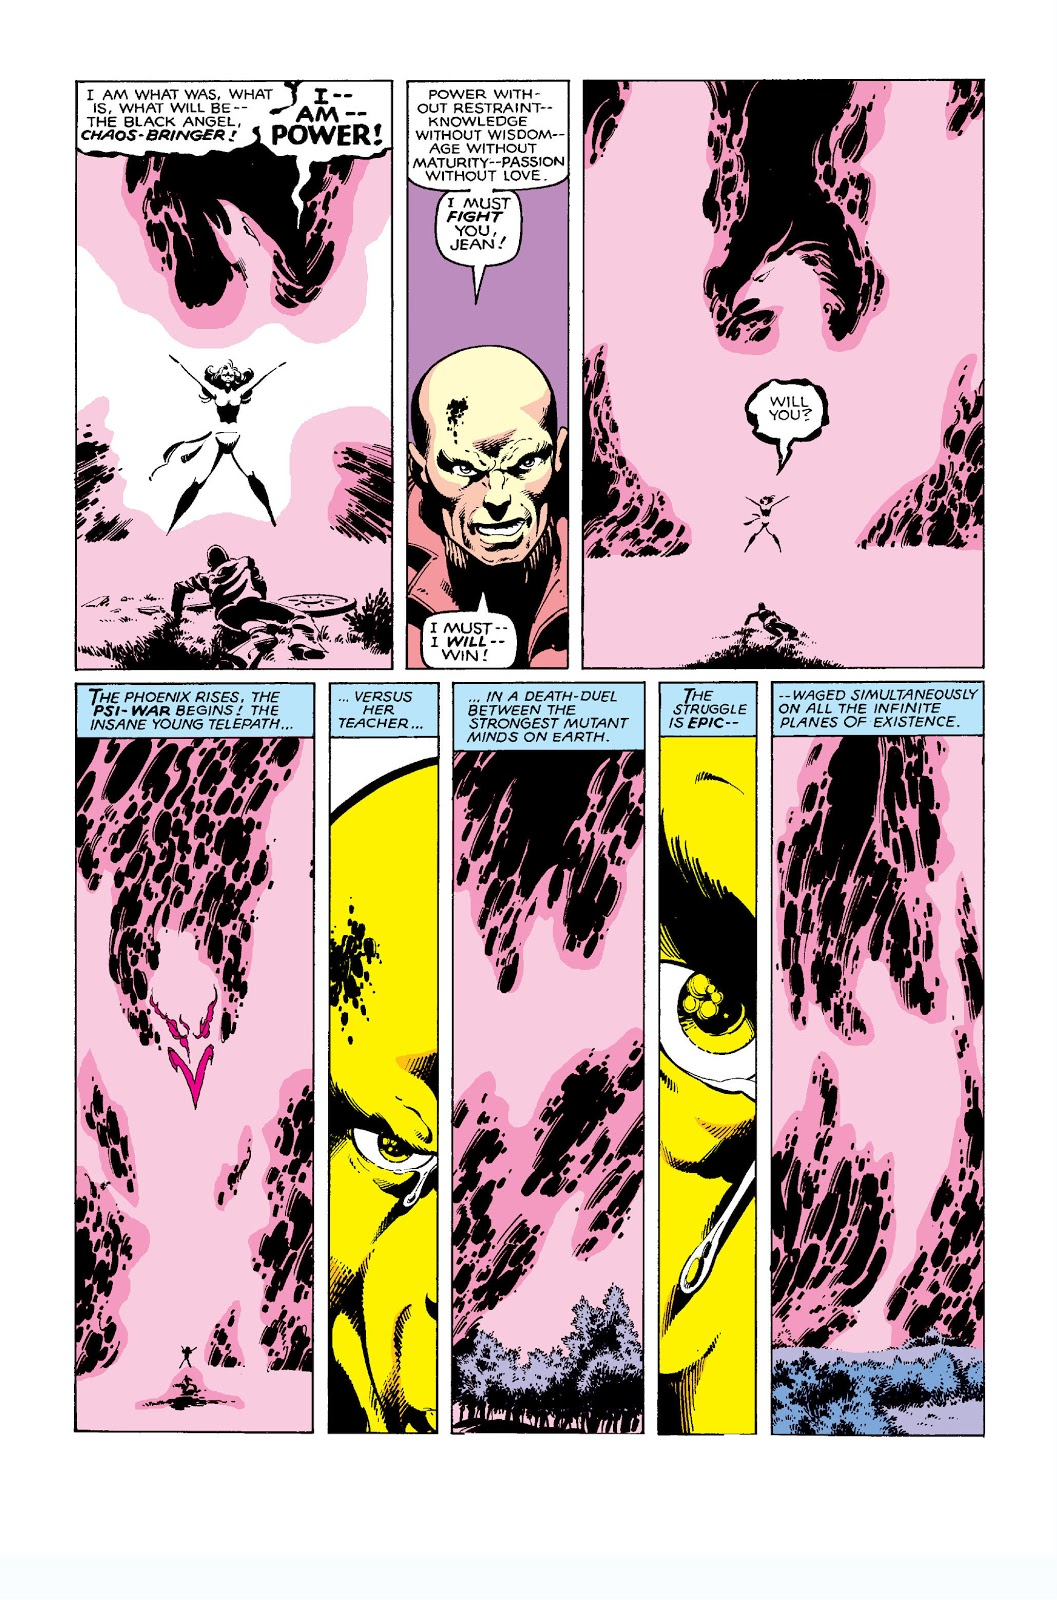 During the 'X-Men: Dark Phoenix' saga, Professor X fights the Dark Phoenix in a psi-war.